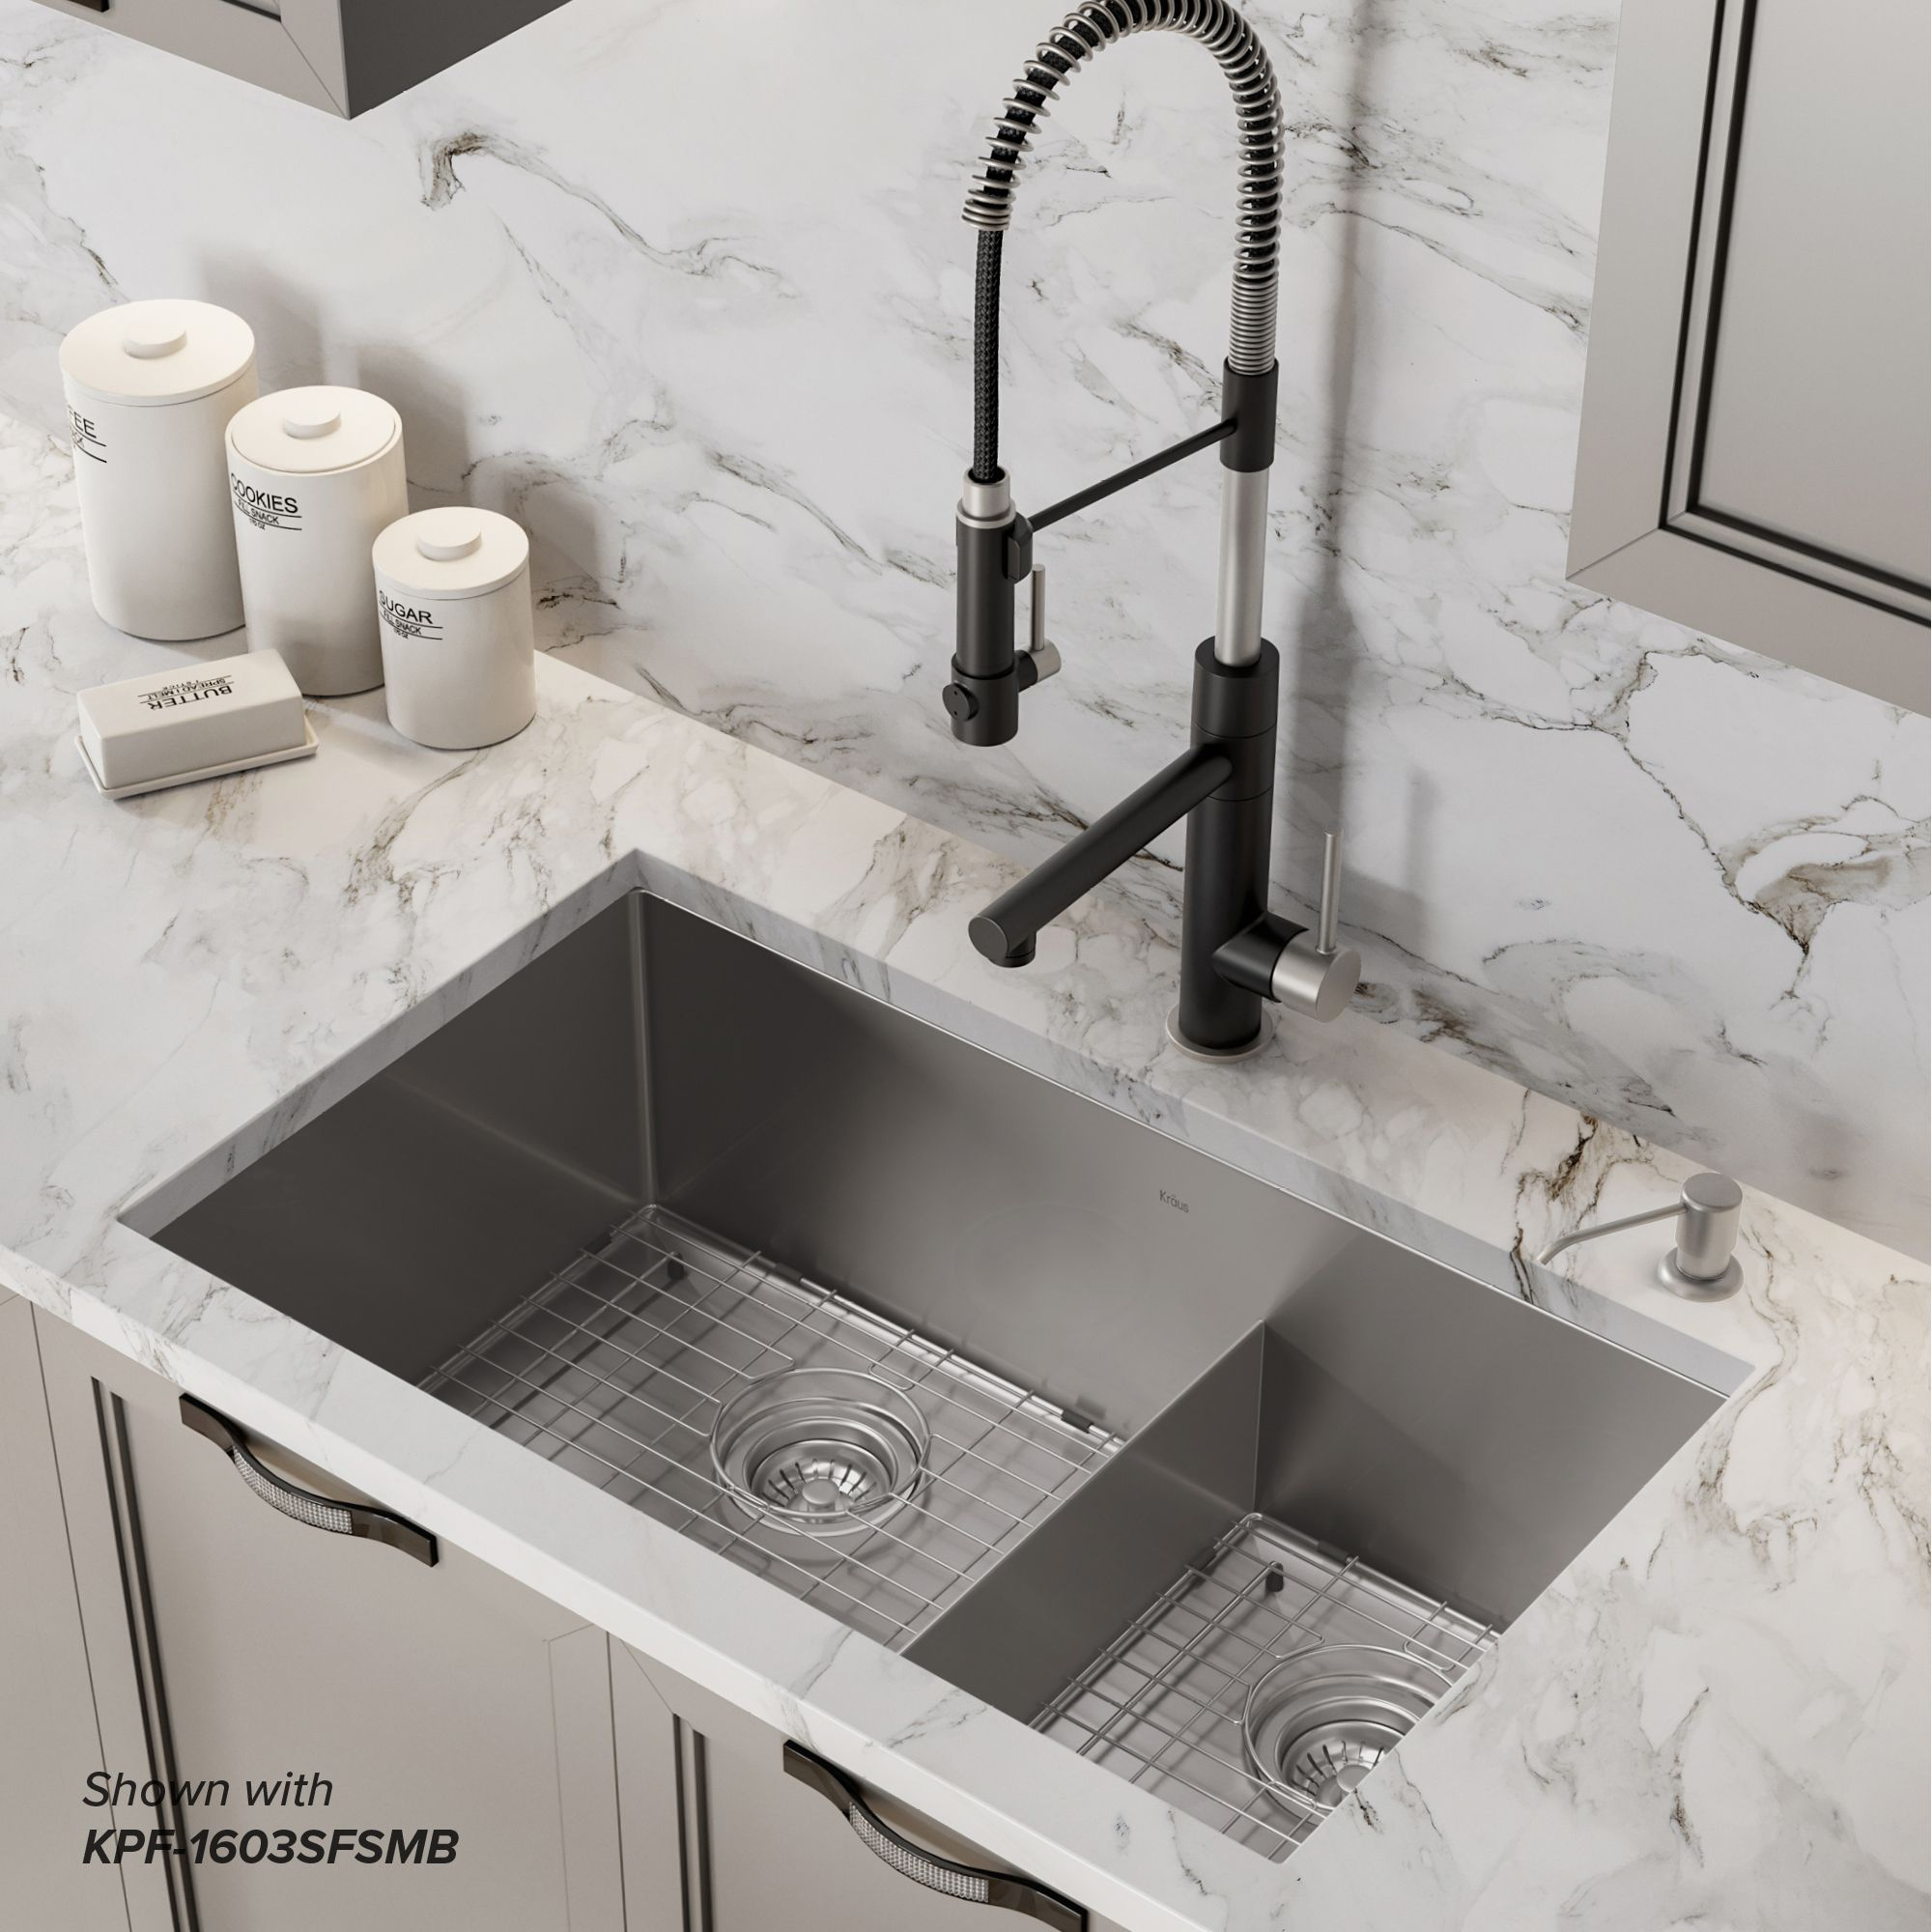 Creating And Caring For Storage Space Under Kitchen Sink